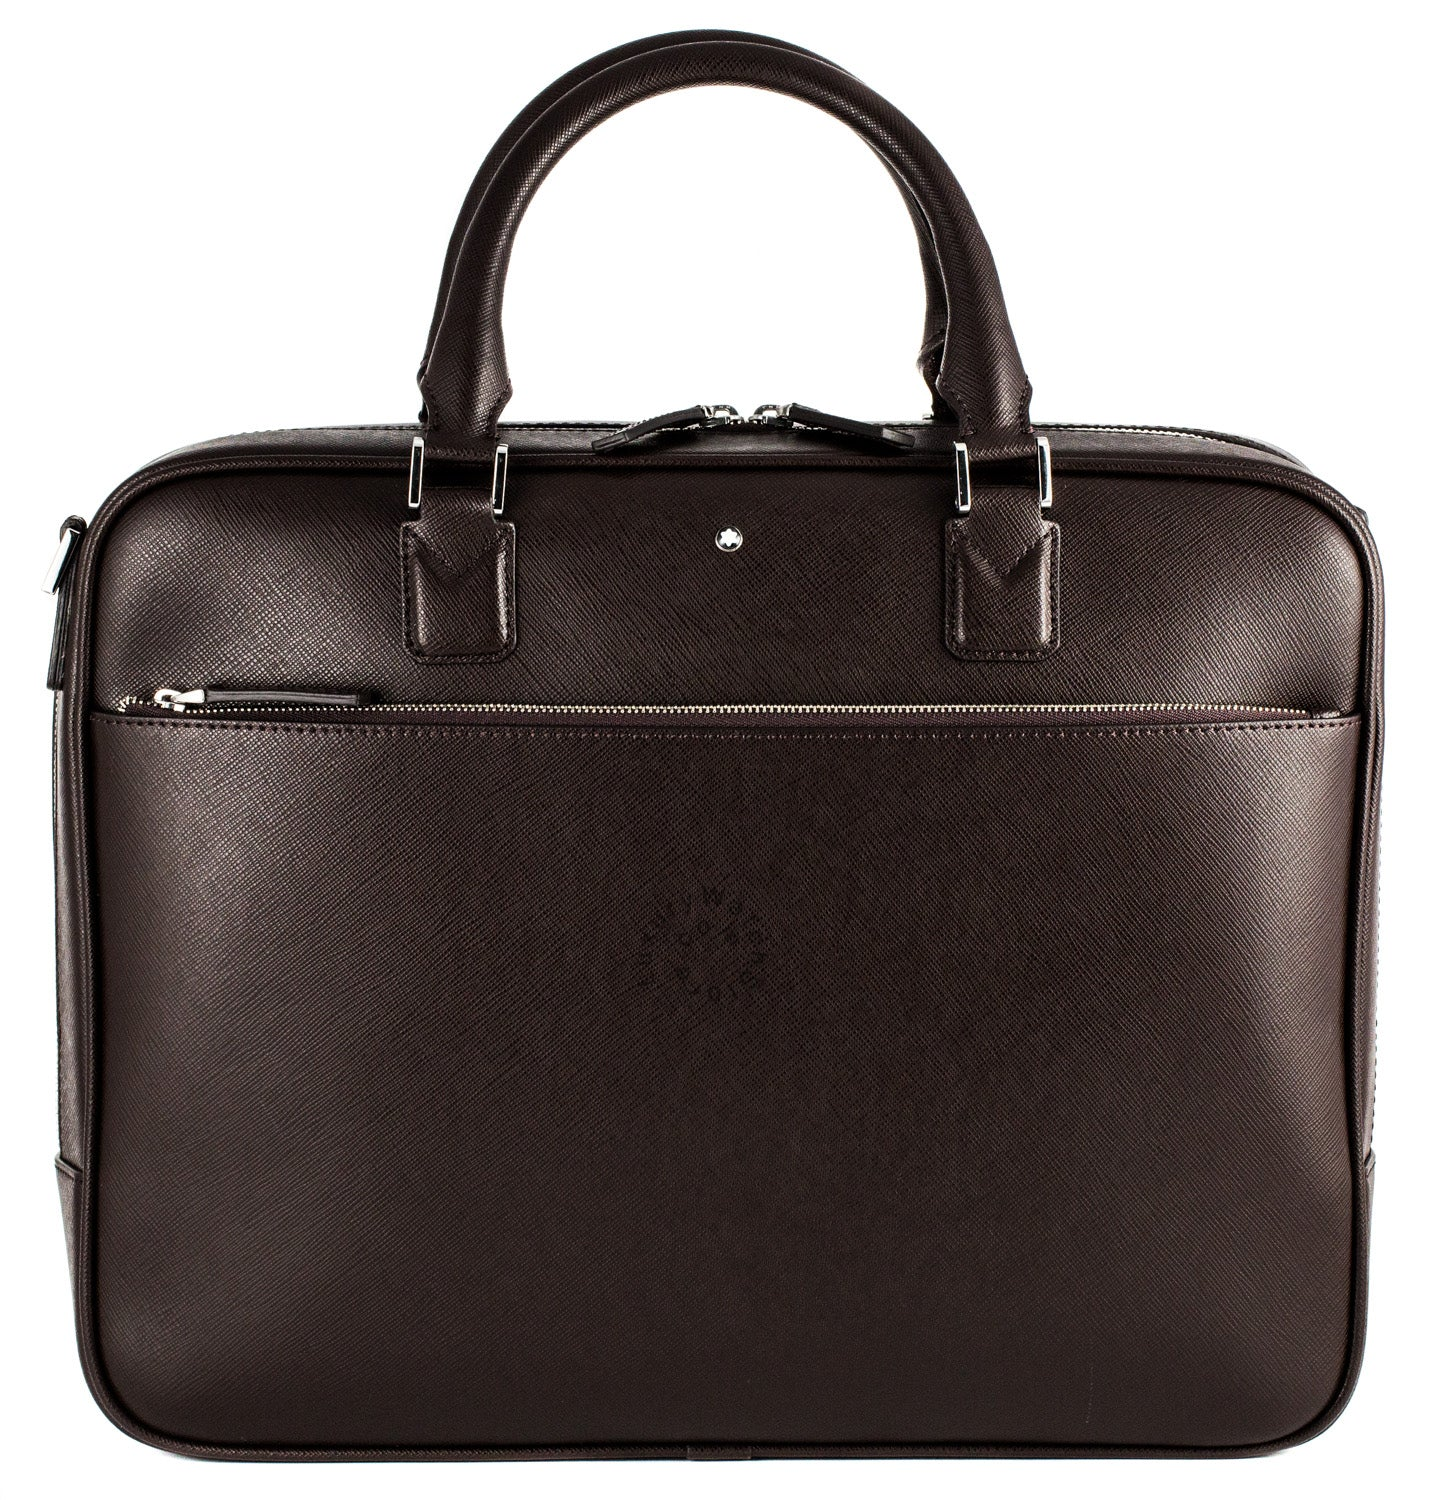 Montblanc Document Case Bussiness Brown Leather Bag 113185